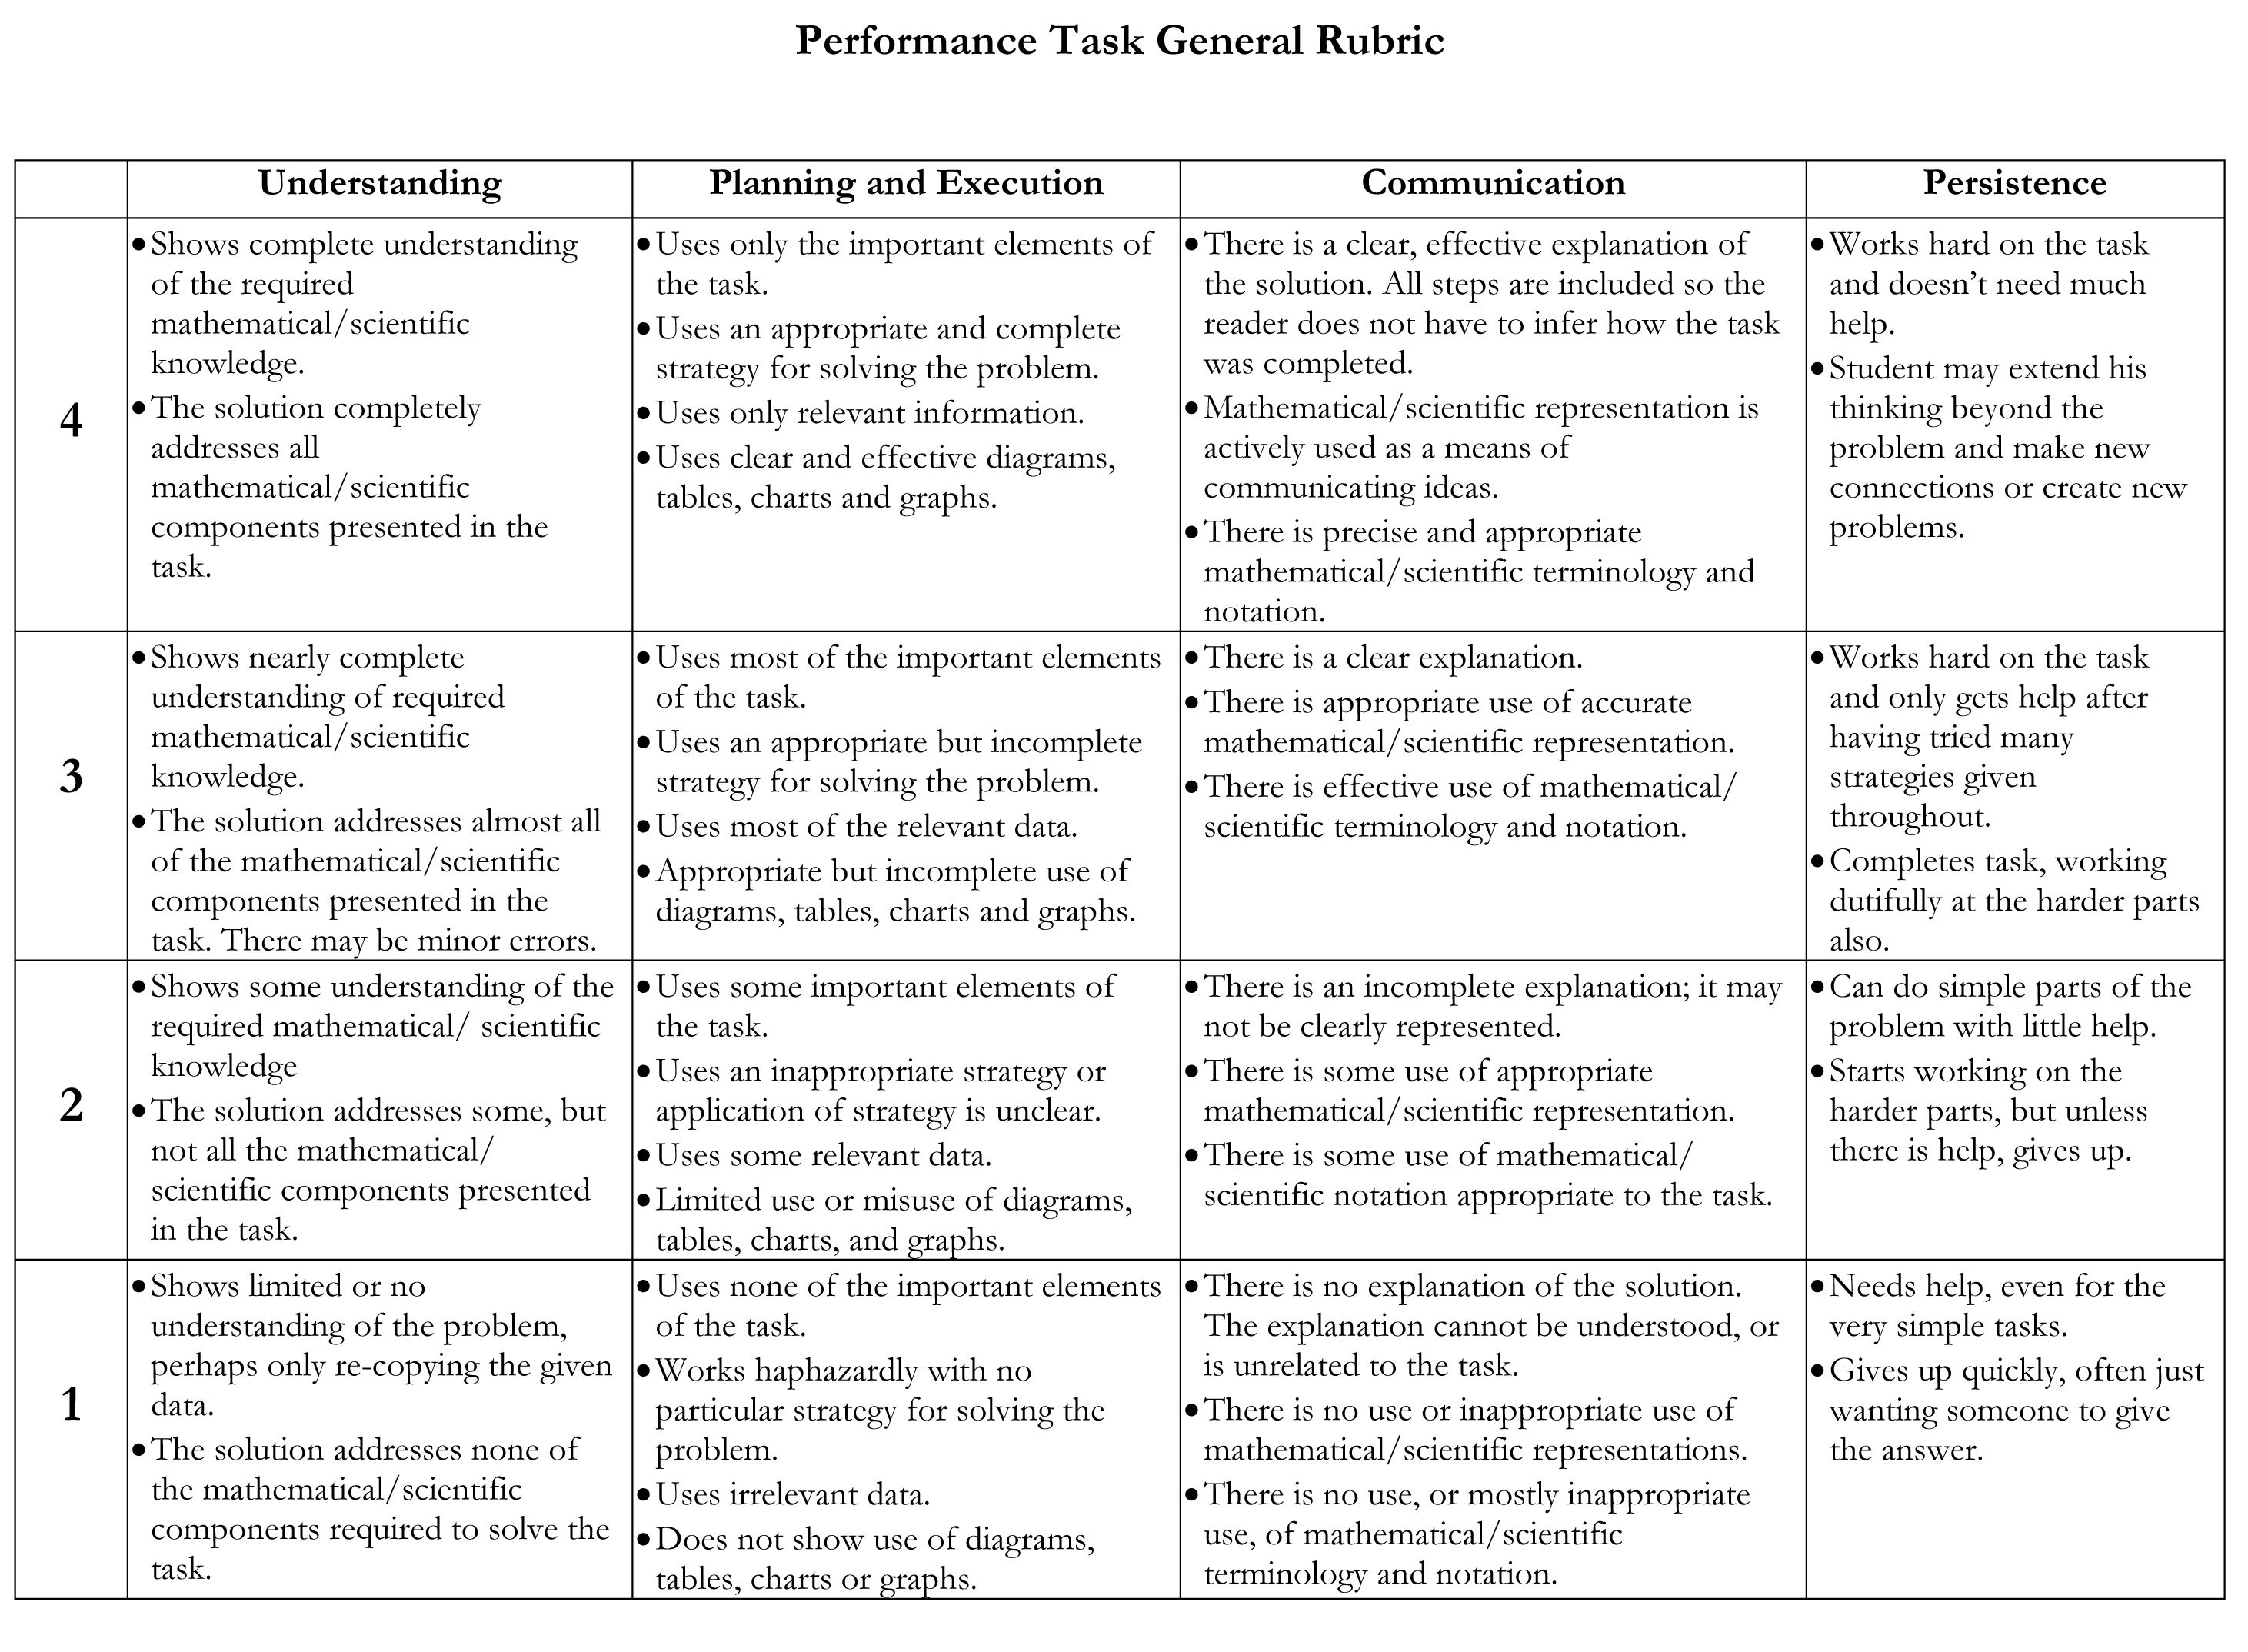 Performance Task Rubric. Assessment. *I like the different aspects ...